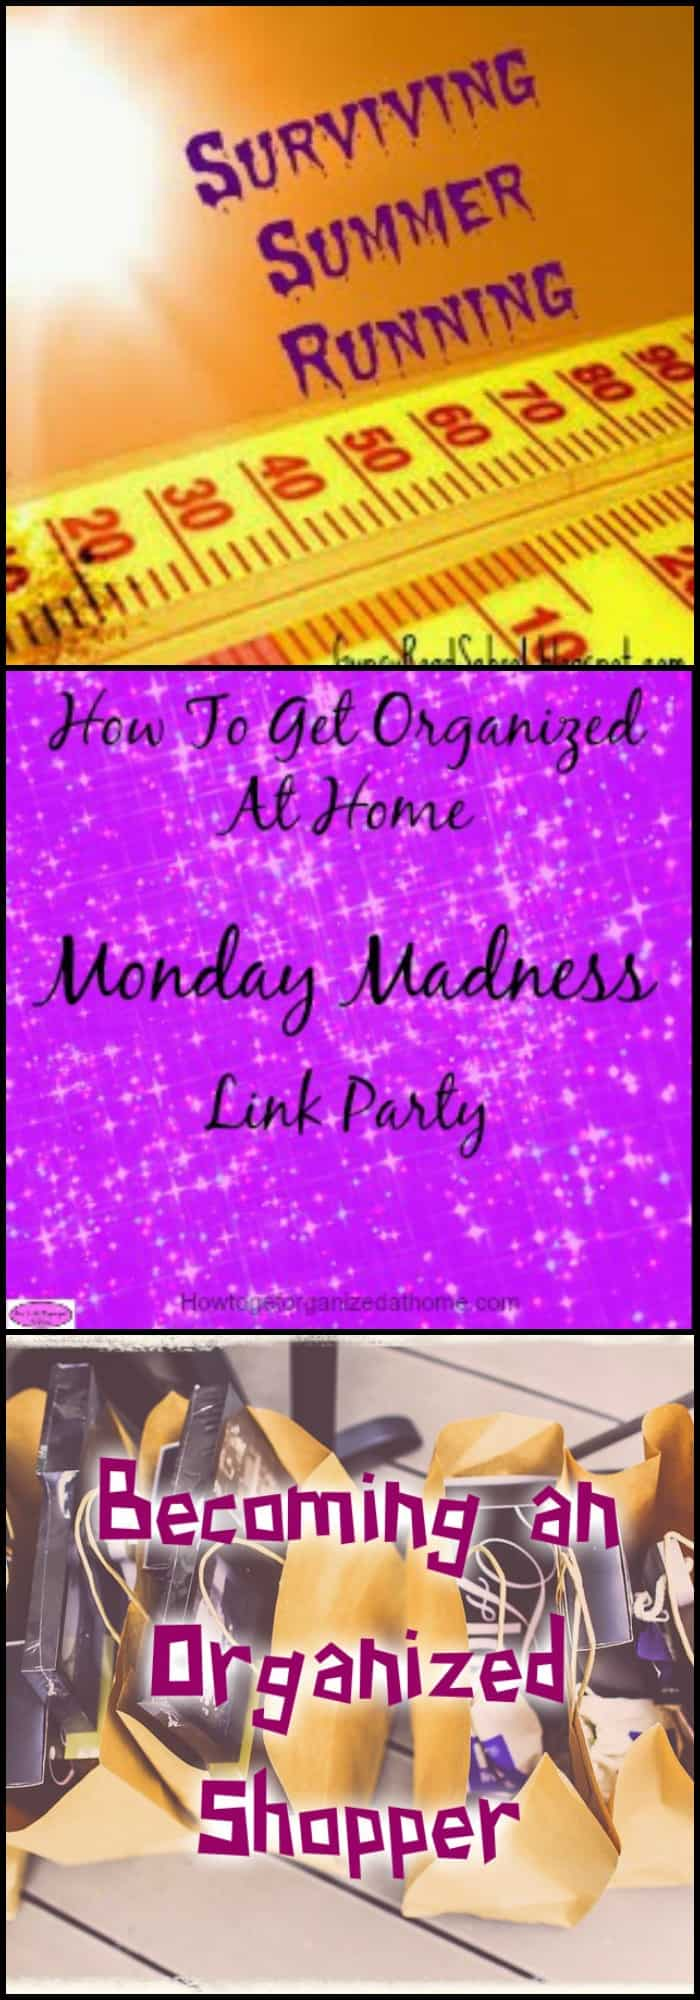 Sharing some of the best of the Monday Madness's posts from the month of May. There is some awesome family content in here for you to read!